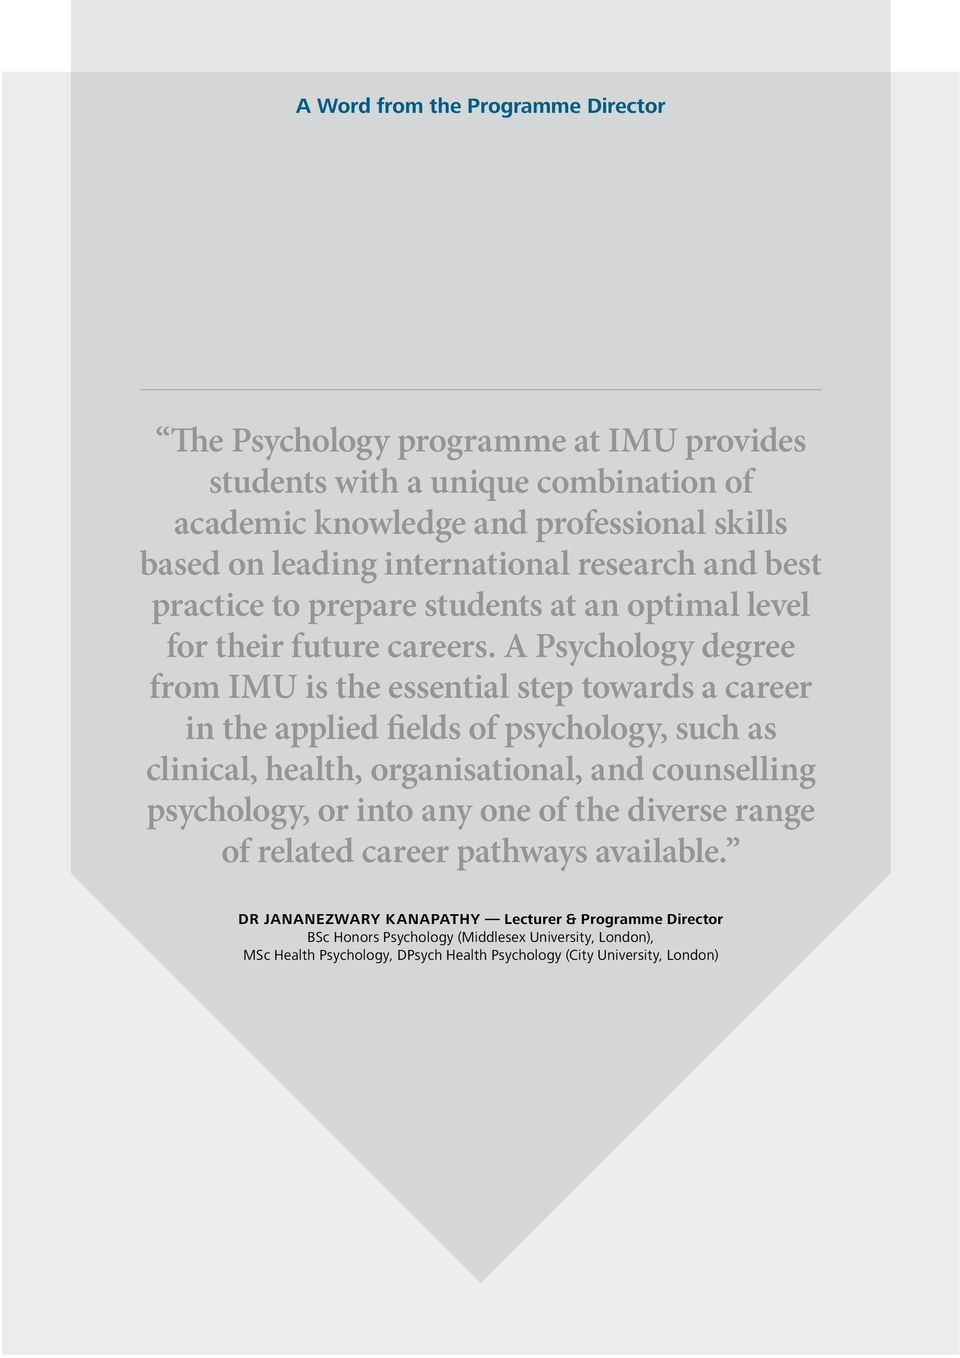 A Psychology degree from IMU is the essential step towards a career in the applied fields of psychology, such as clinical, health, organisational, and counselling psychology, or